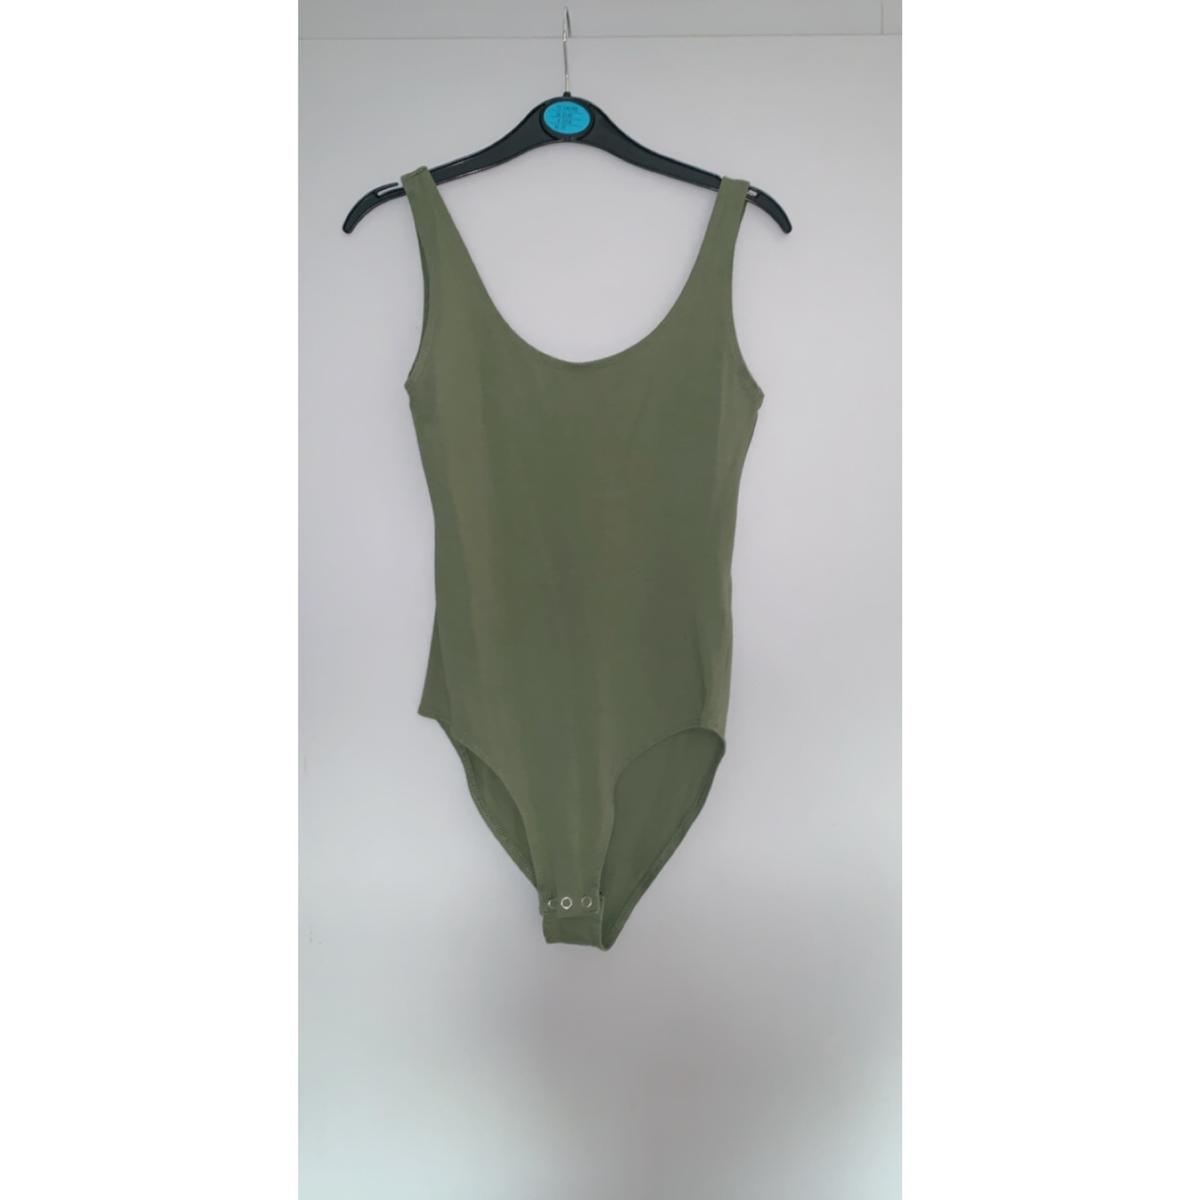 Topshop size 8. Worn a few times but too small now. Need gone! £8 including postage